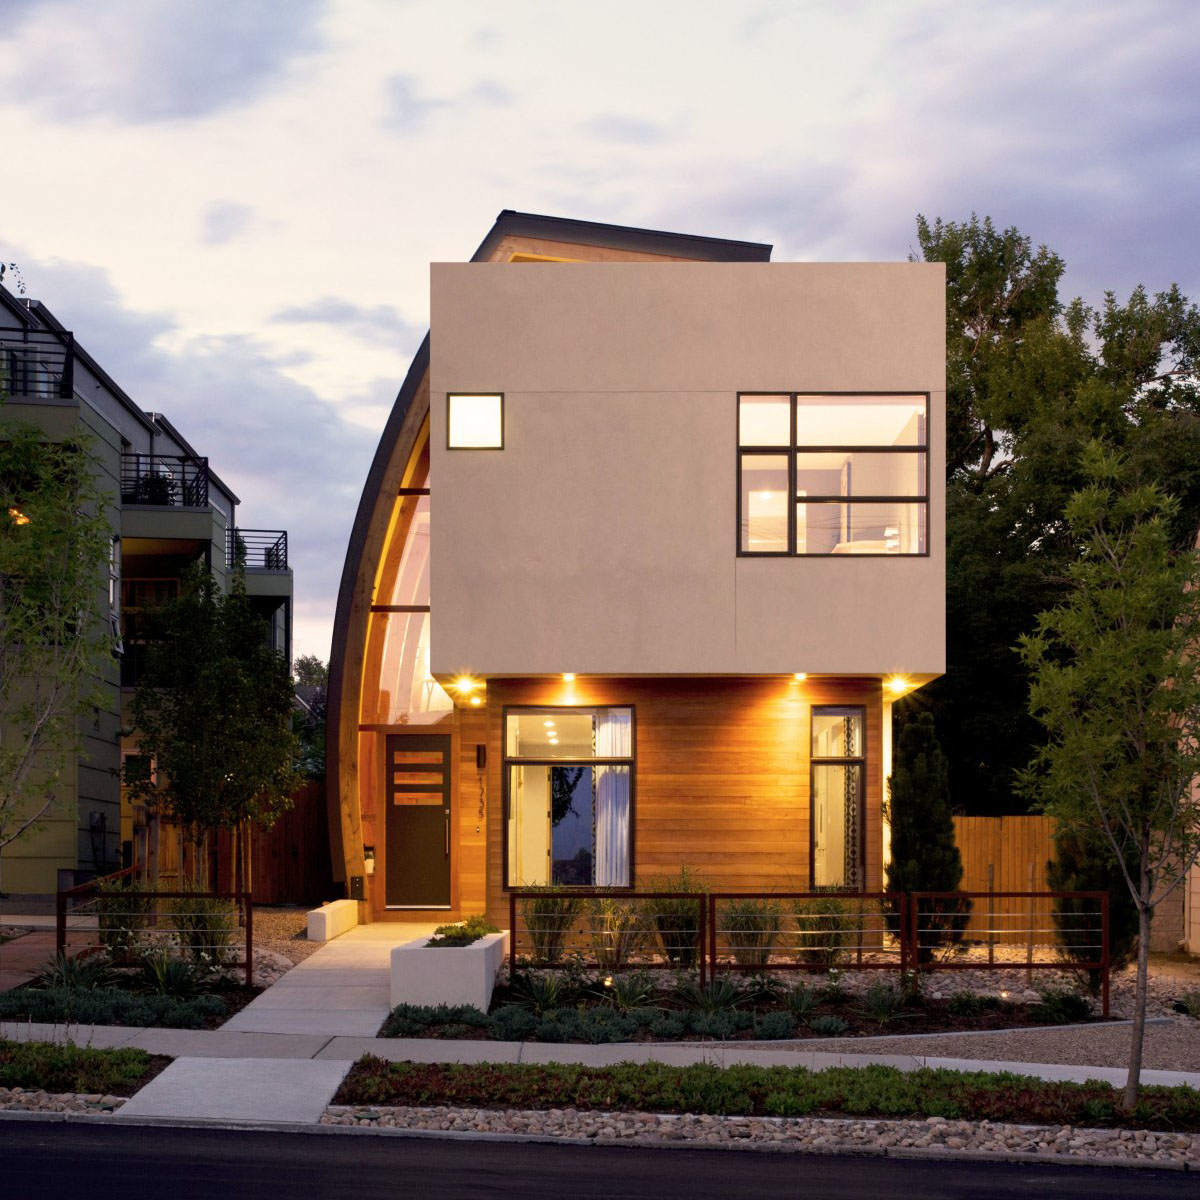 Inspiring Urban Infill With Sun Catching Curve Metal: modern home construction